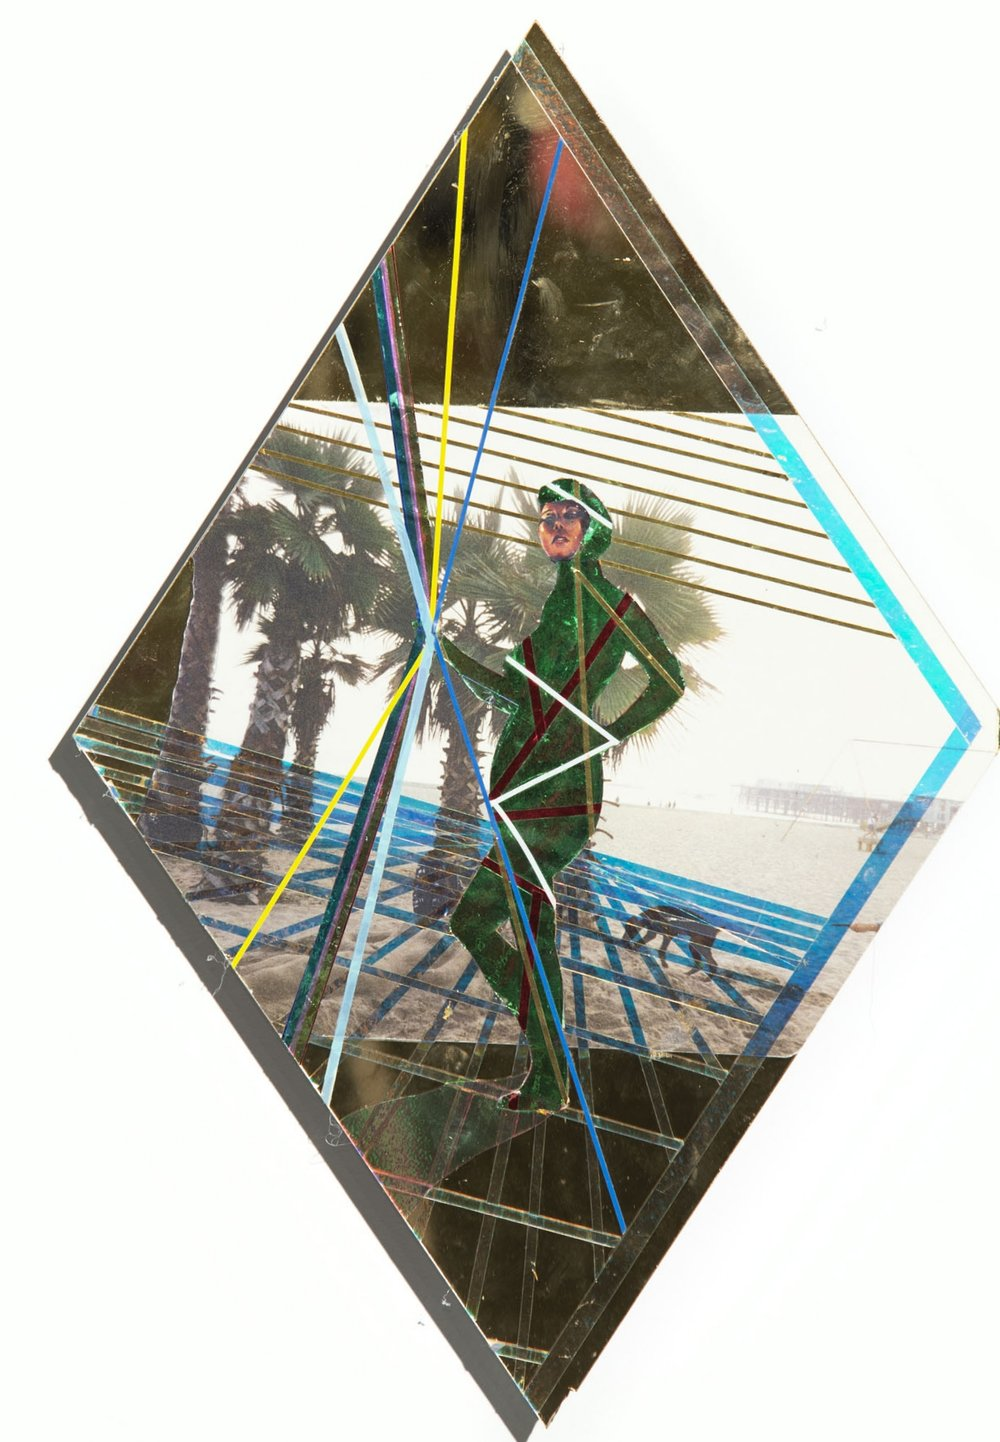 Had A Dream We Were On Our Way   2018 Paper, vinyl, tape, lights, and cellophane on plexiglas 18h x 12w in